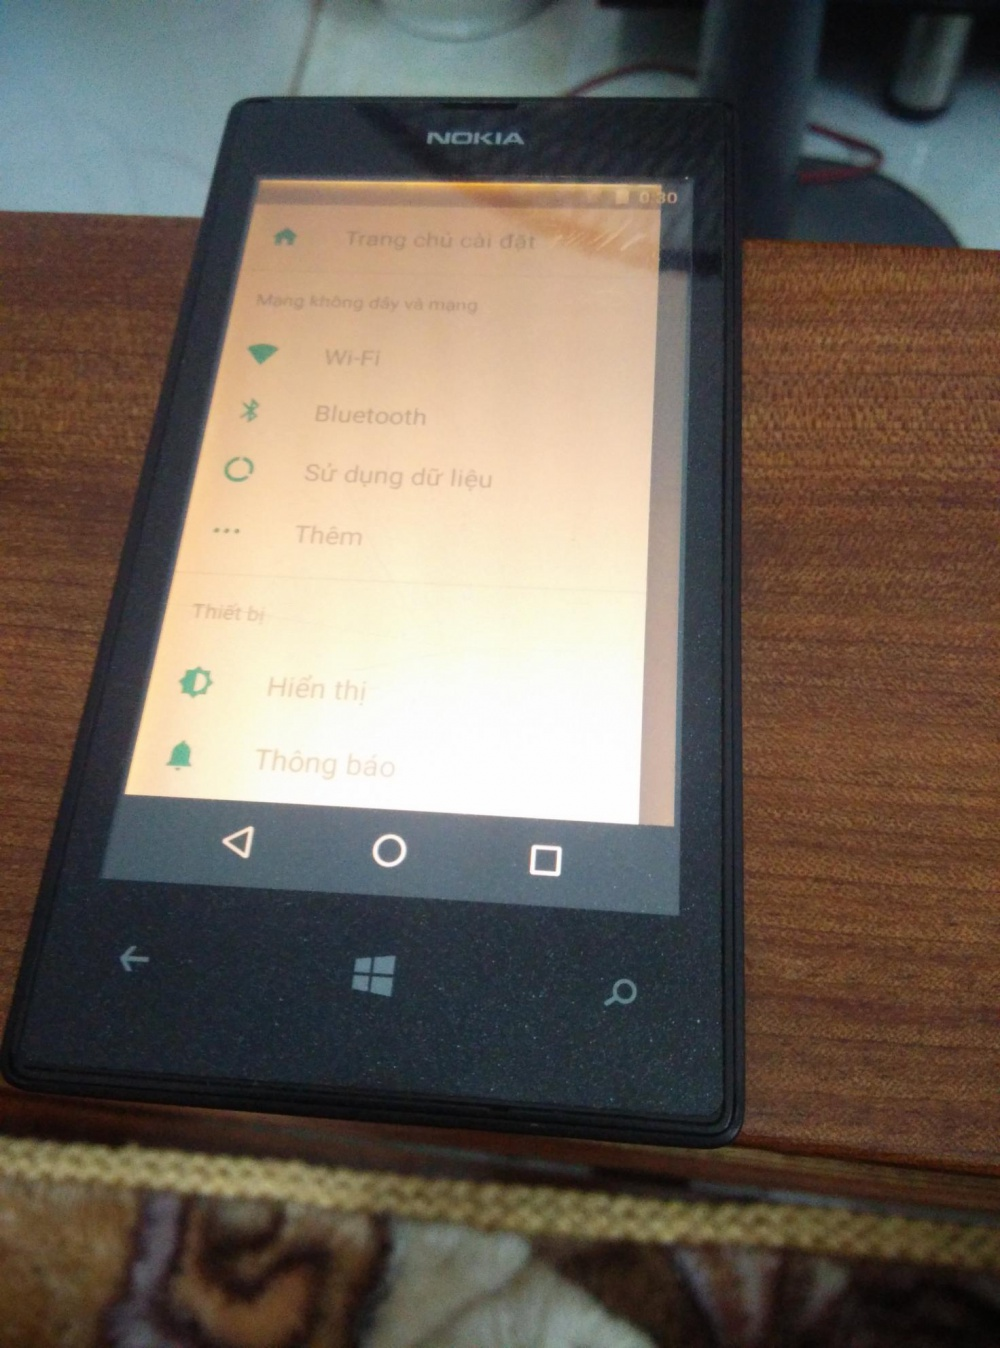 I Am Sure Many Of You Remember The Nokia Lumia 520 Affordable Smartphone  Announced Back In 2013 With Windows 8 Preinstalled Out Of The Box